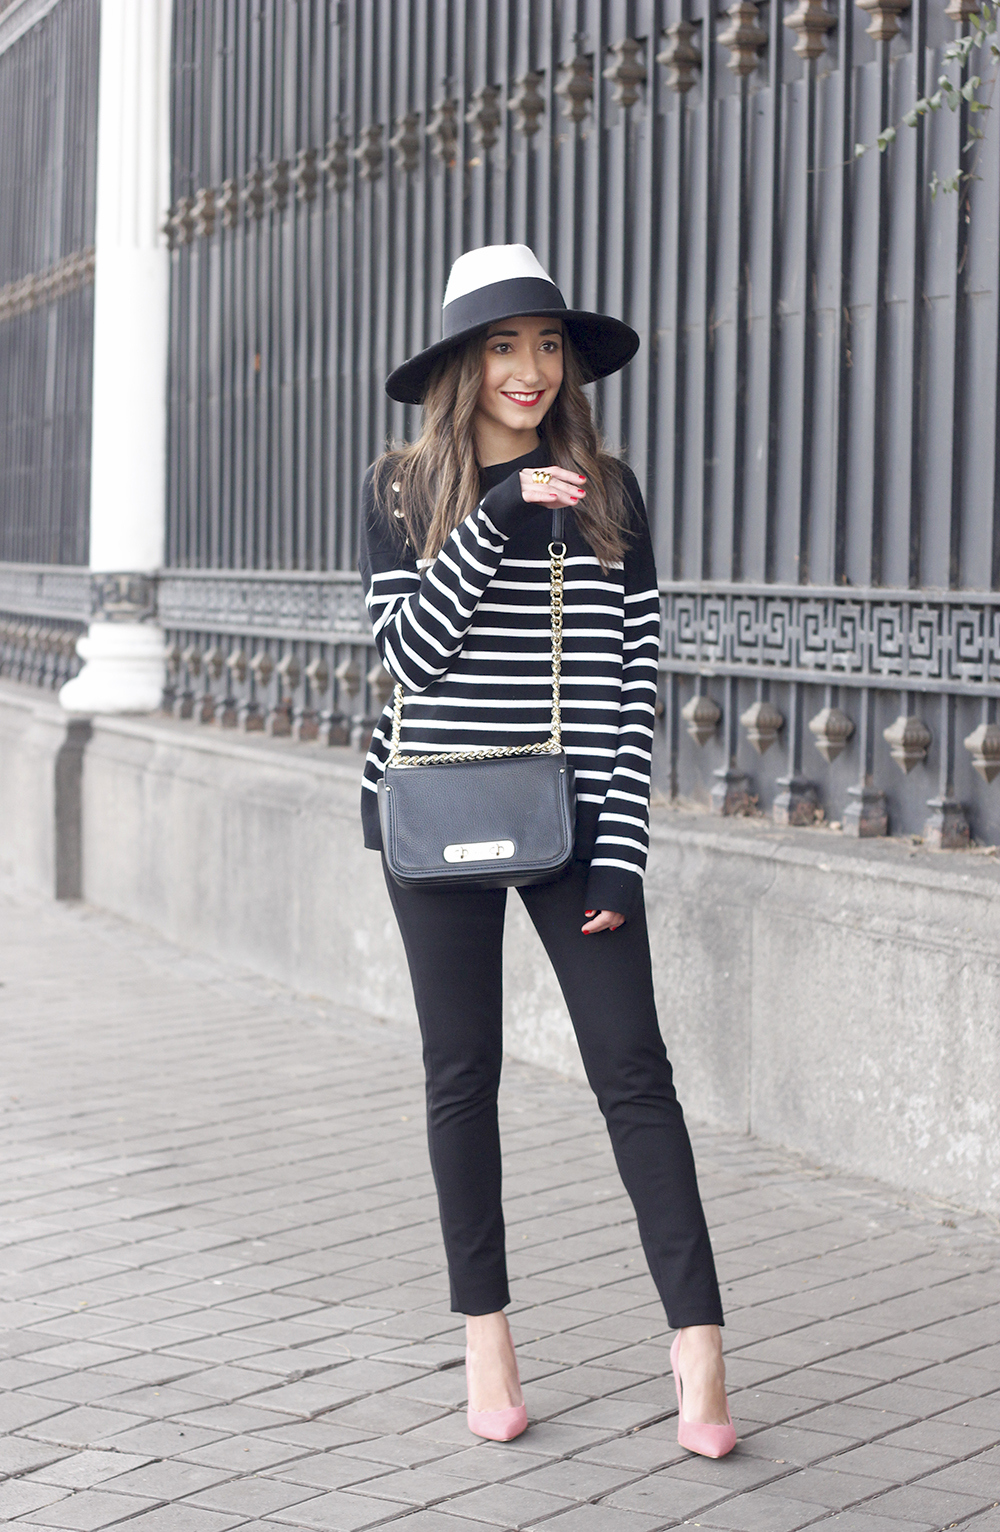 striped sweater maje pink heels black trousers coach bag uterqüe hat accessories style fashion03